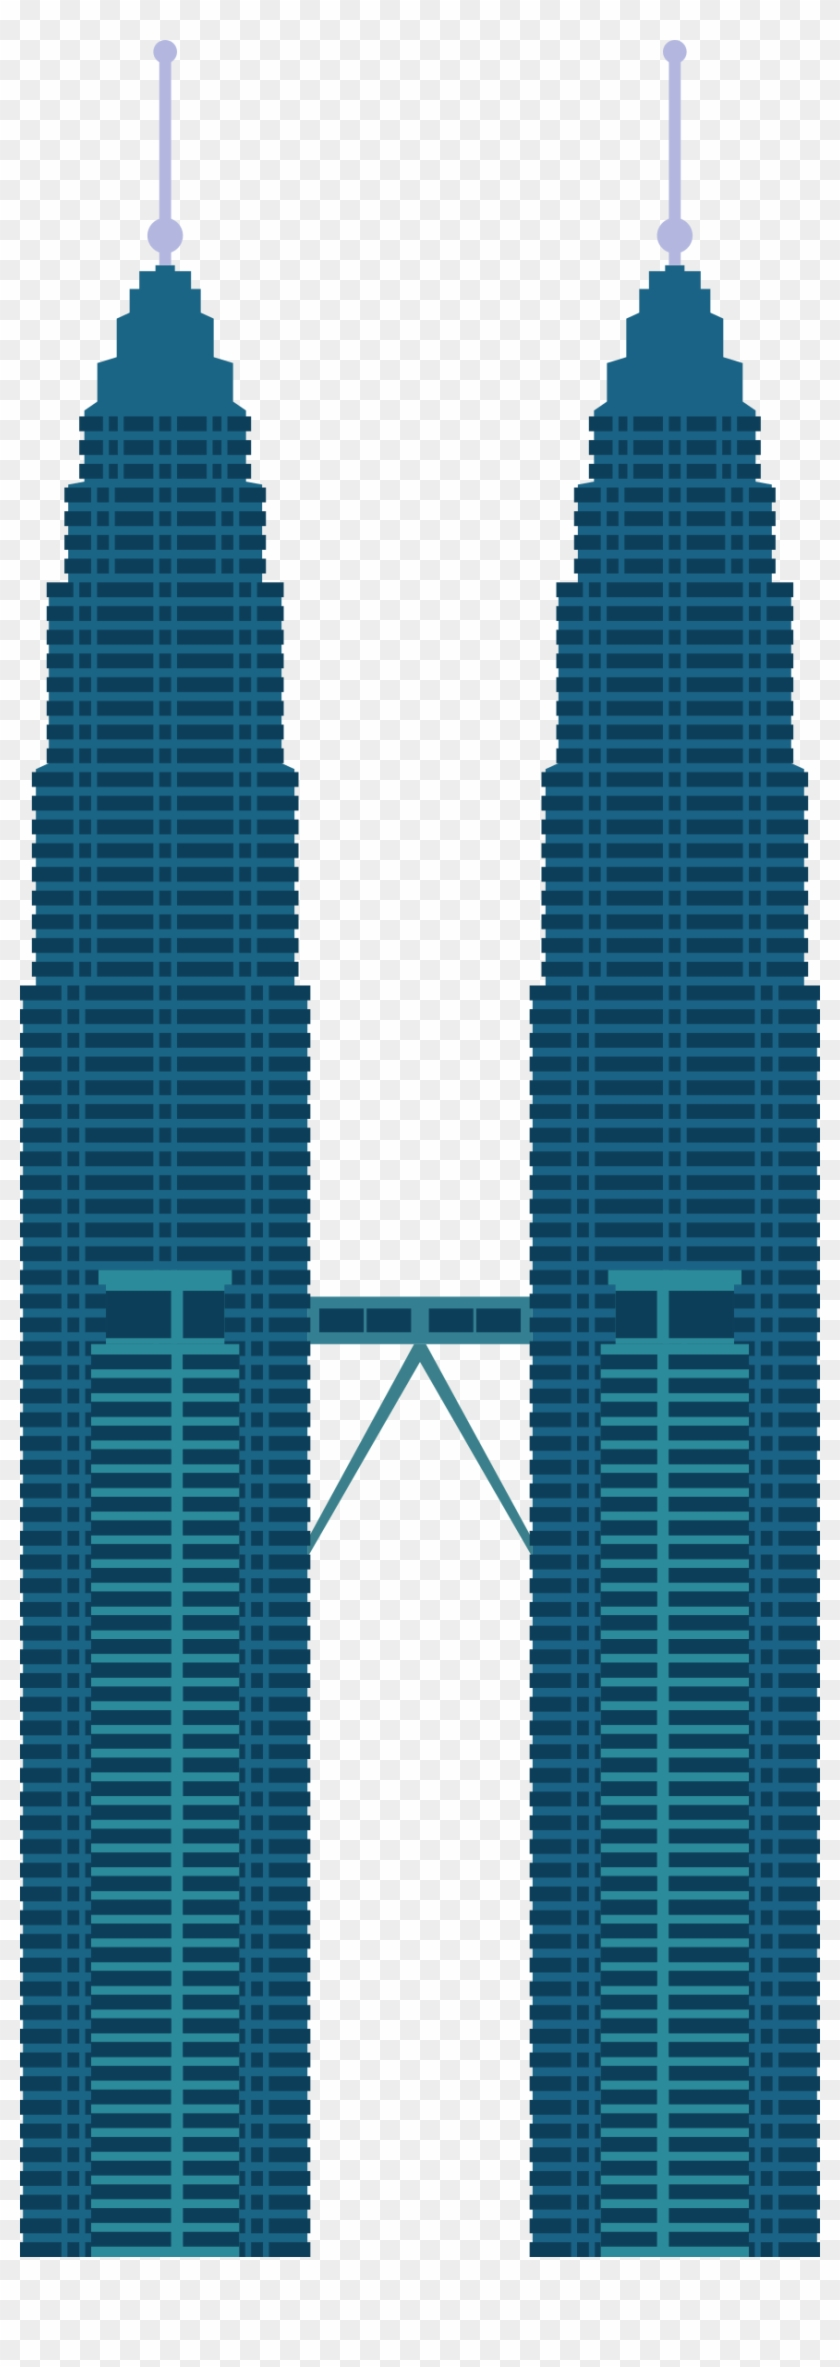 Twin Tower Png : tower, Image, Petronas, Towers, Vector, Transparent, Clipart, Images, Download